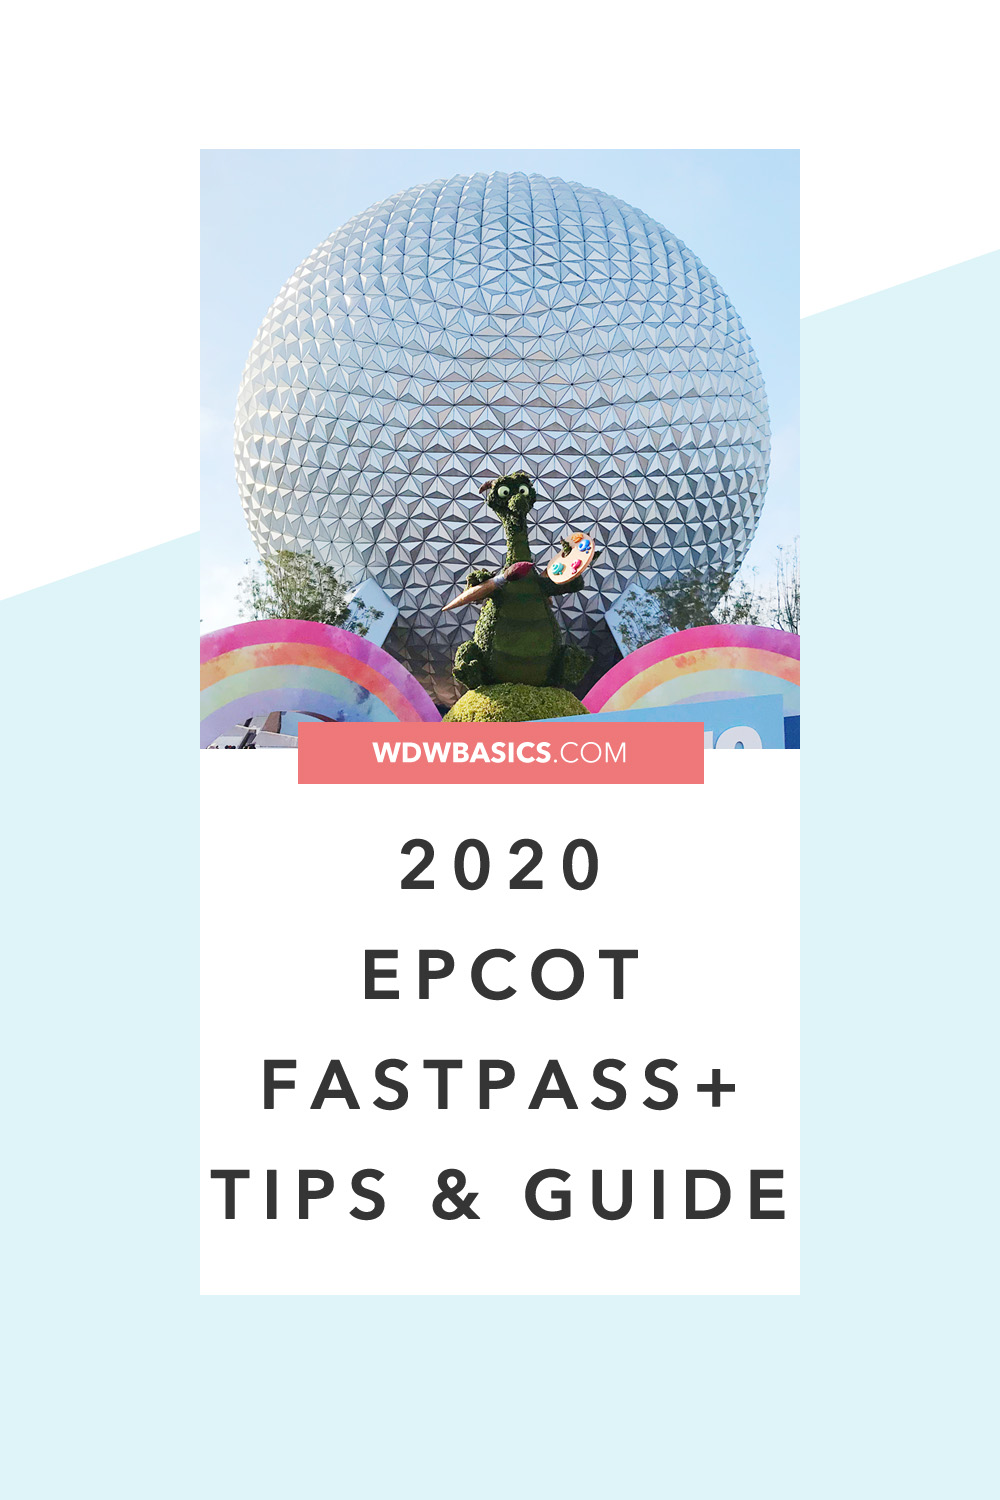 Epcot FastPass+ Tips and Guide